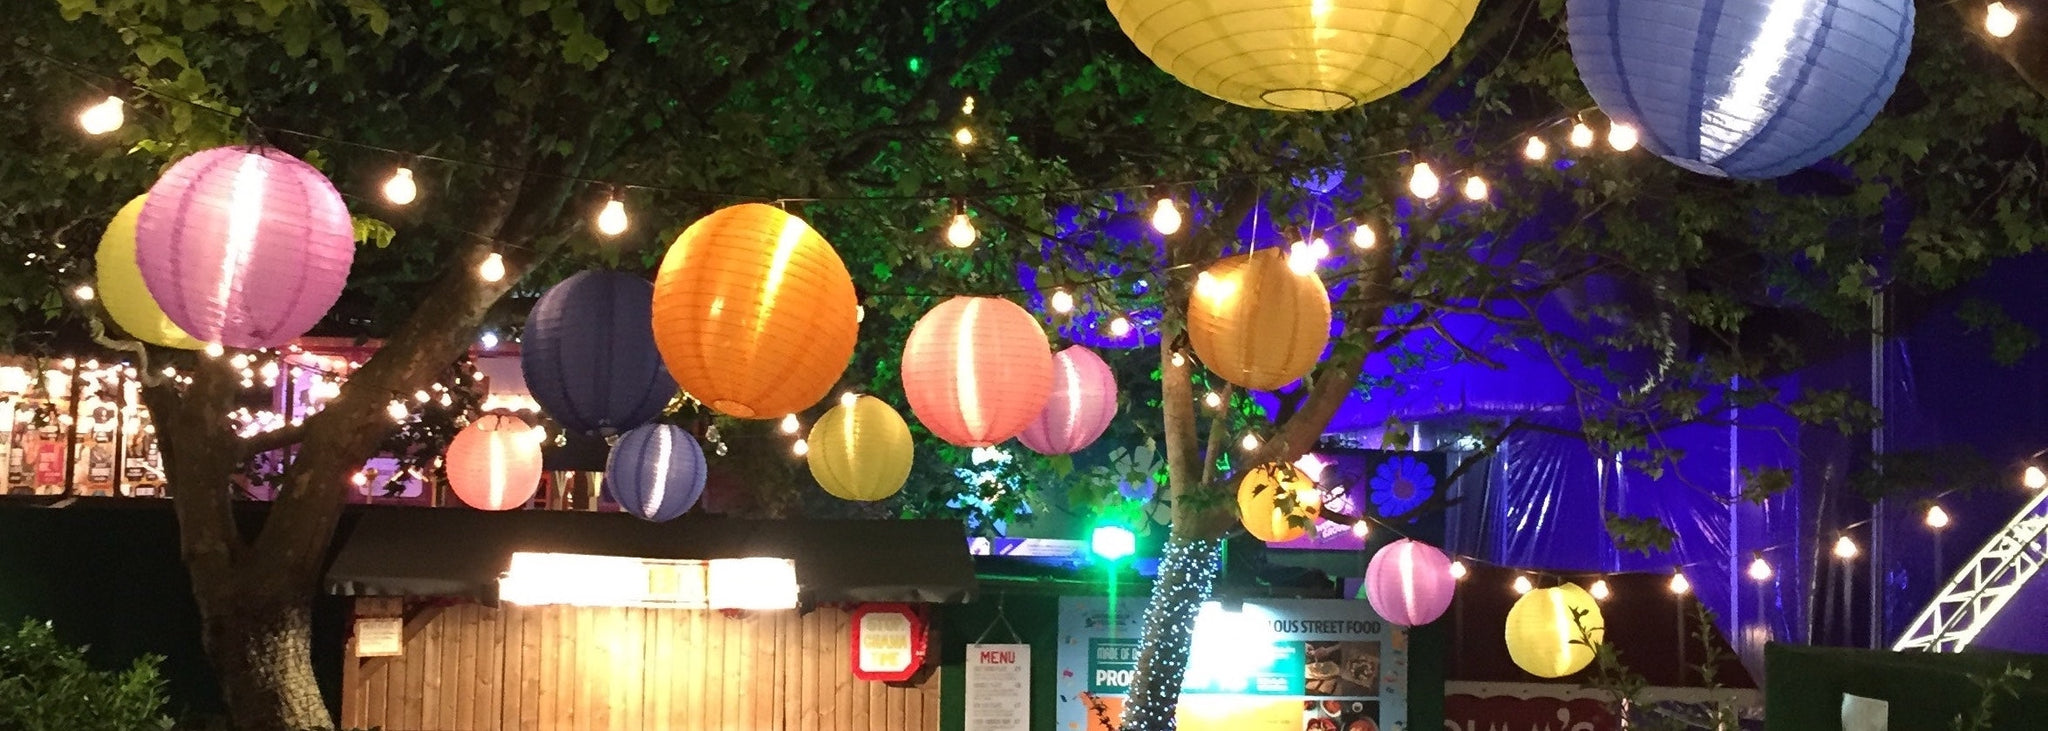 Multicolor paper lanterns hung from trees and lit up after dark